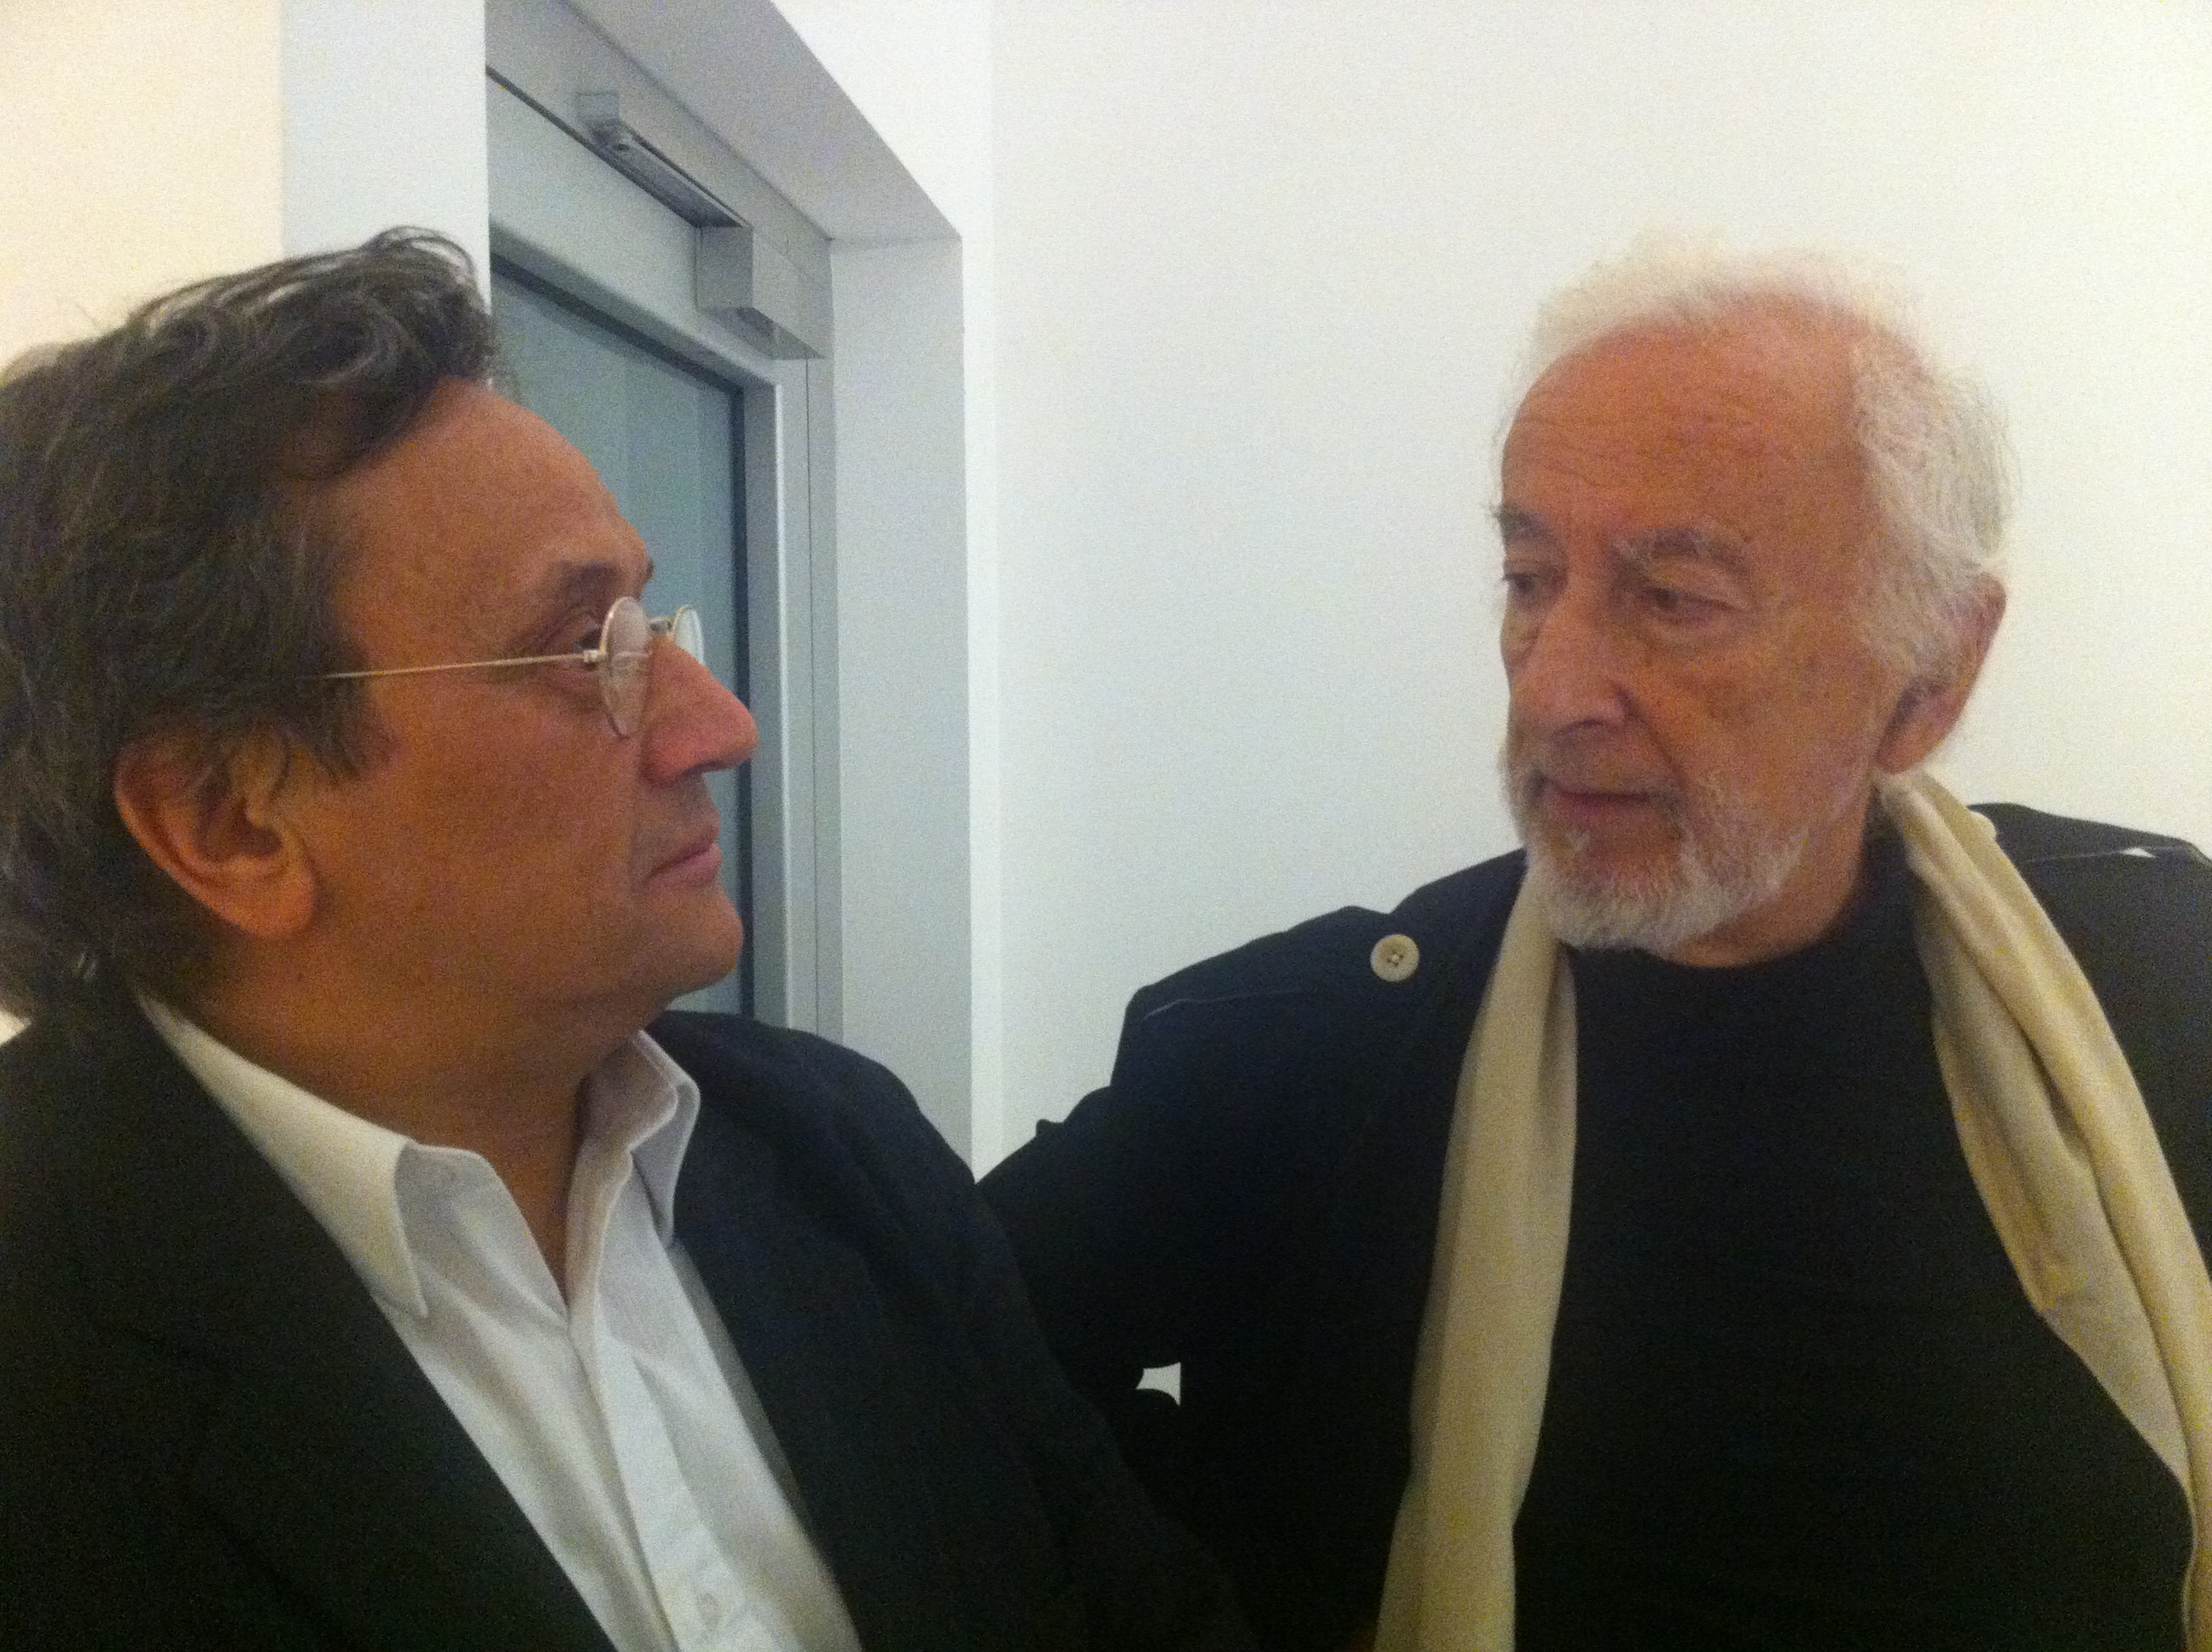 The curators, Italo Tomassoni e Giacinto Di Pietrantonio